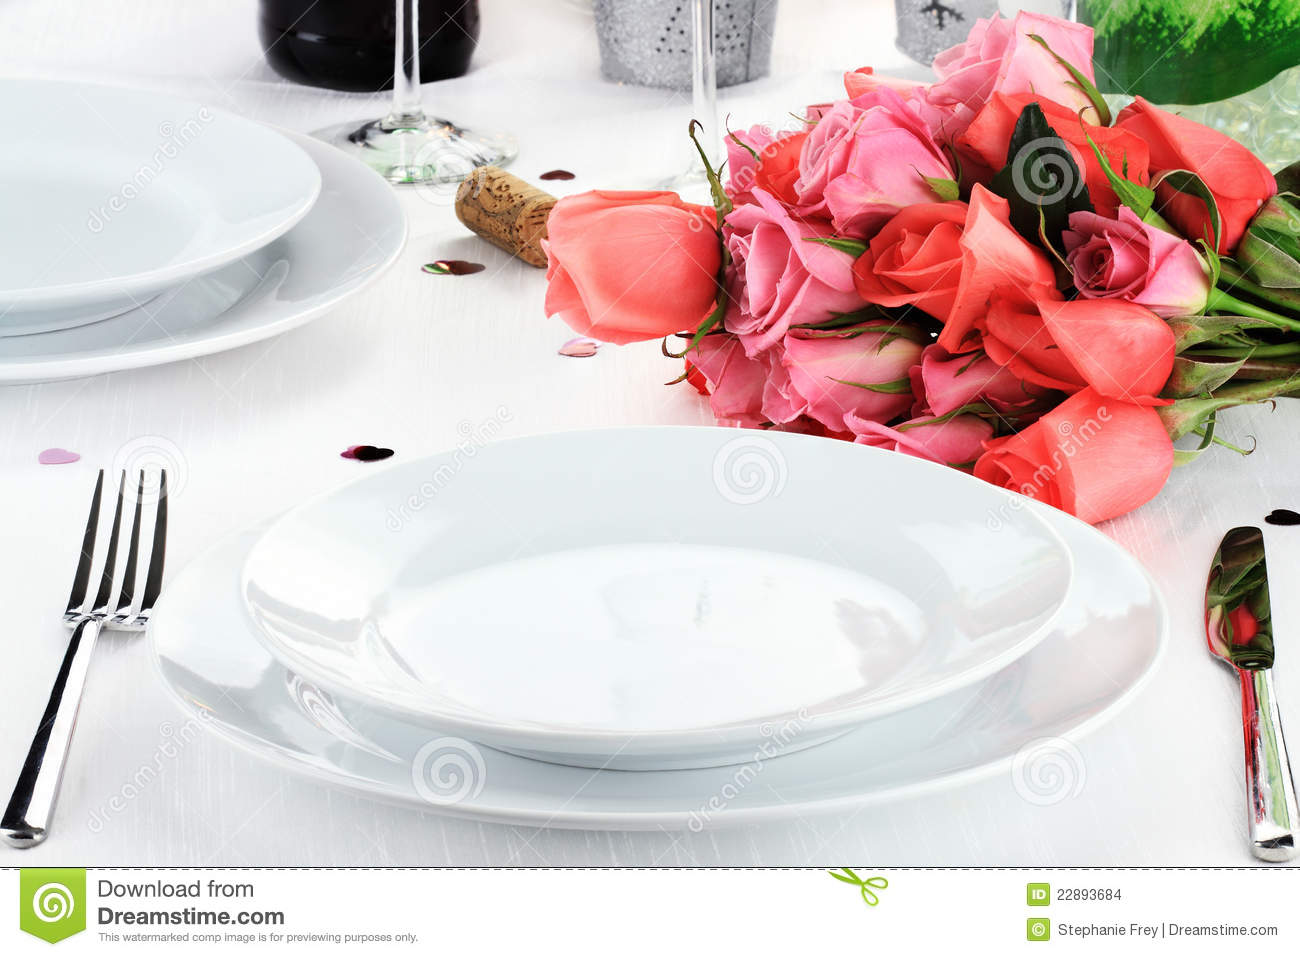 Romantic Dinner For Two Stock Images - Image: 22893684